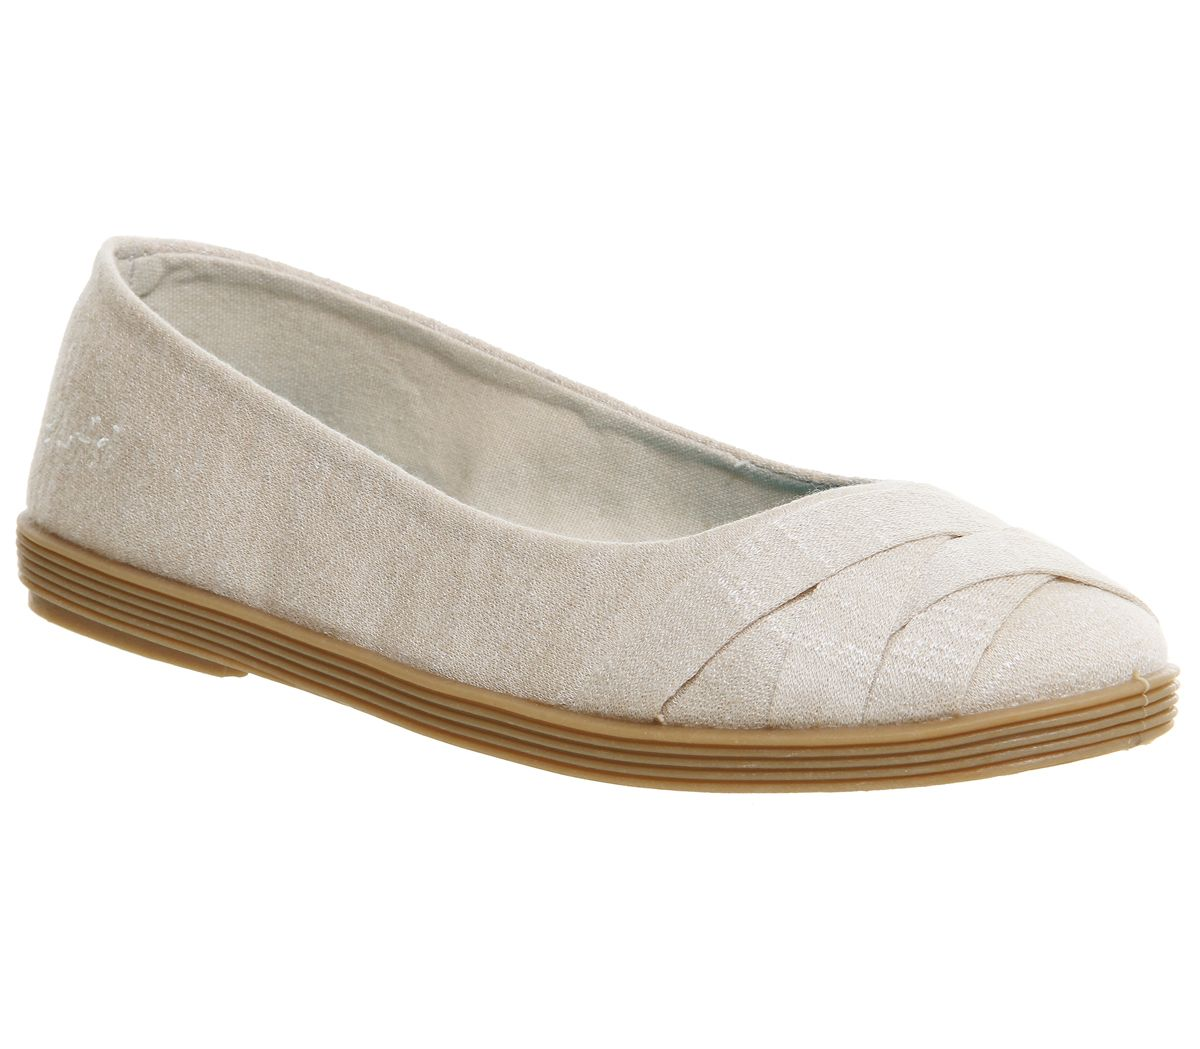 Blowfish Glo pump flats, Cream